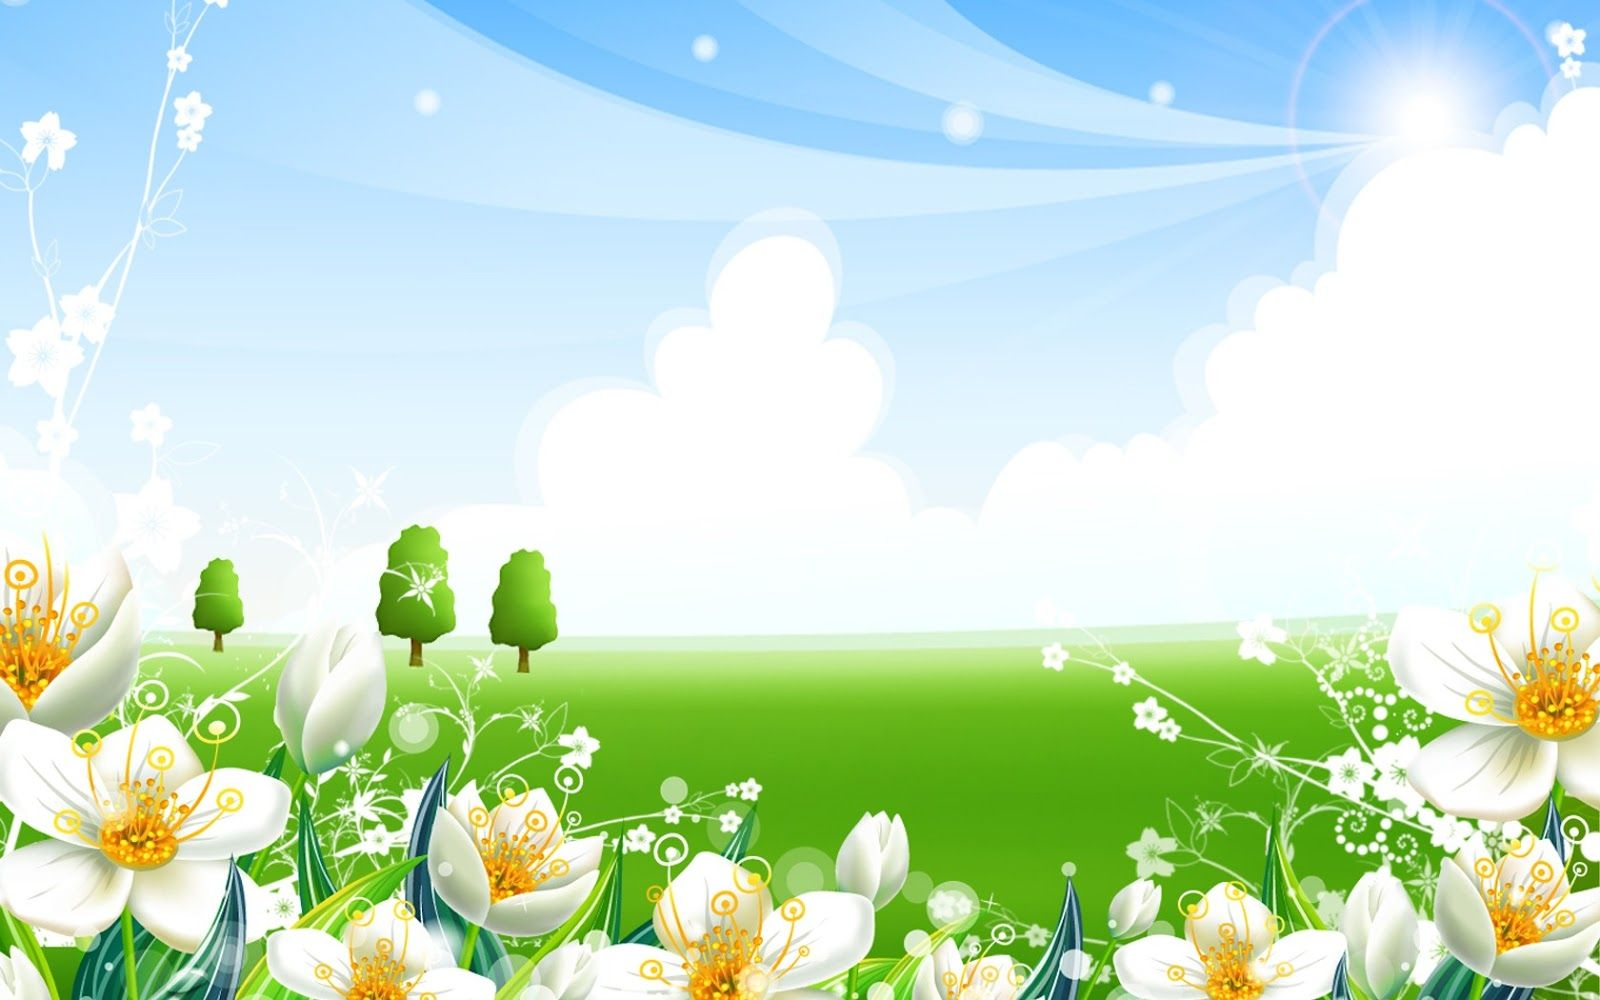 Collection Of Balon Wallpaper On Hdwallpapers X Wallpaper Cantik  Wallpapers